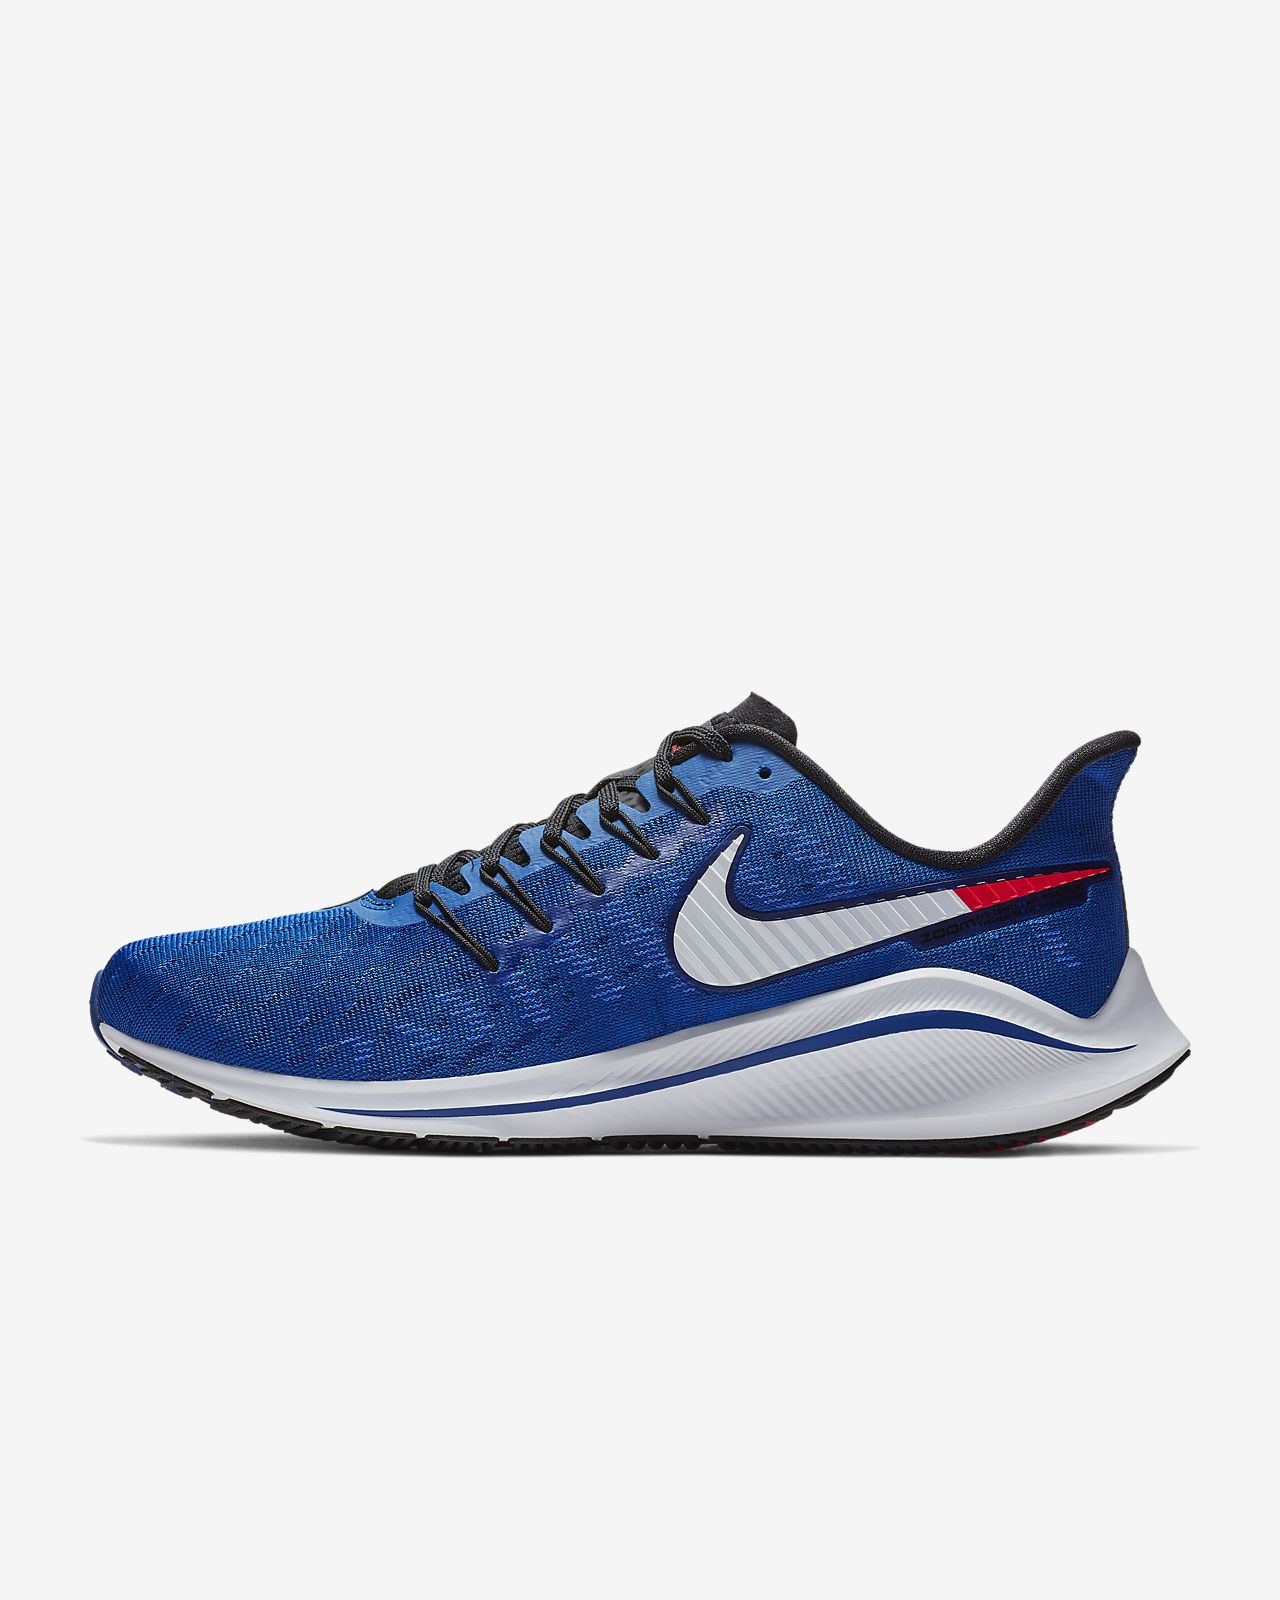 Nike Air Zoom Vomero 14 Men s Running Shoe. Nike.com GB 8b872ae91